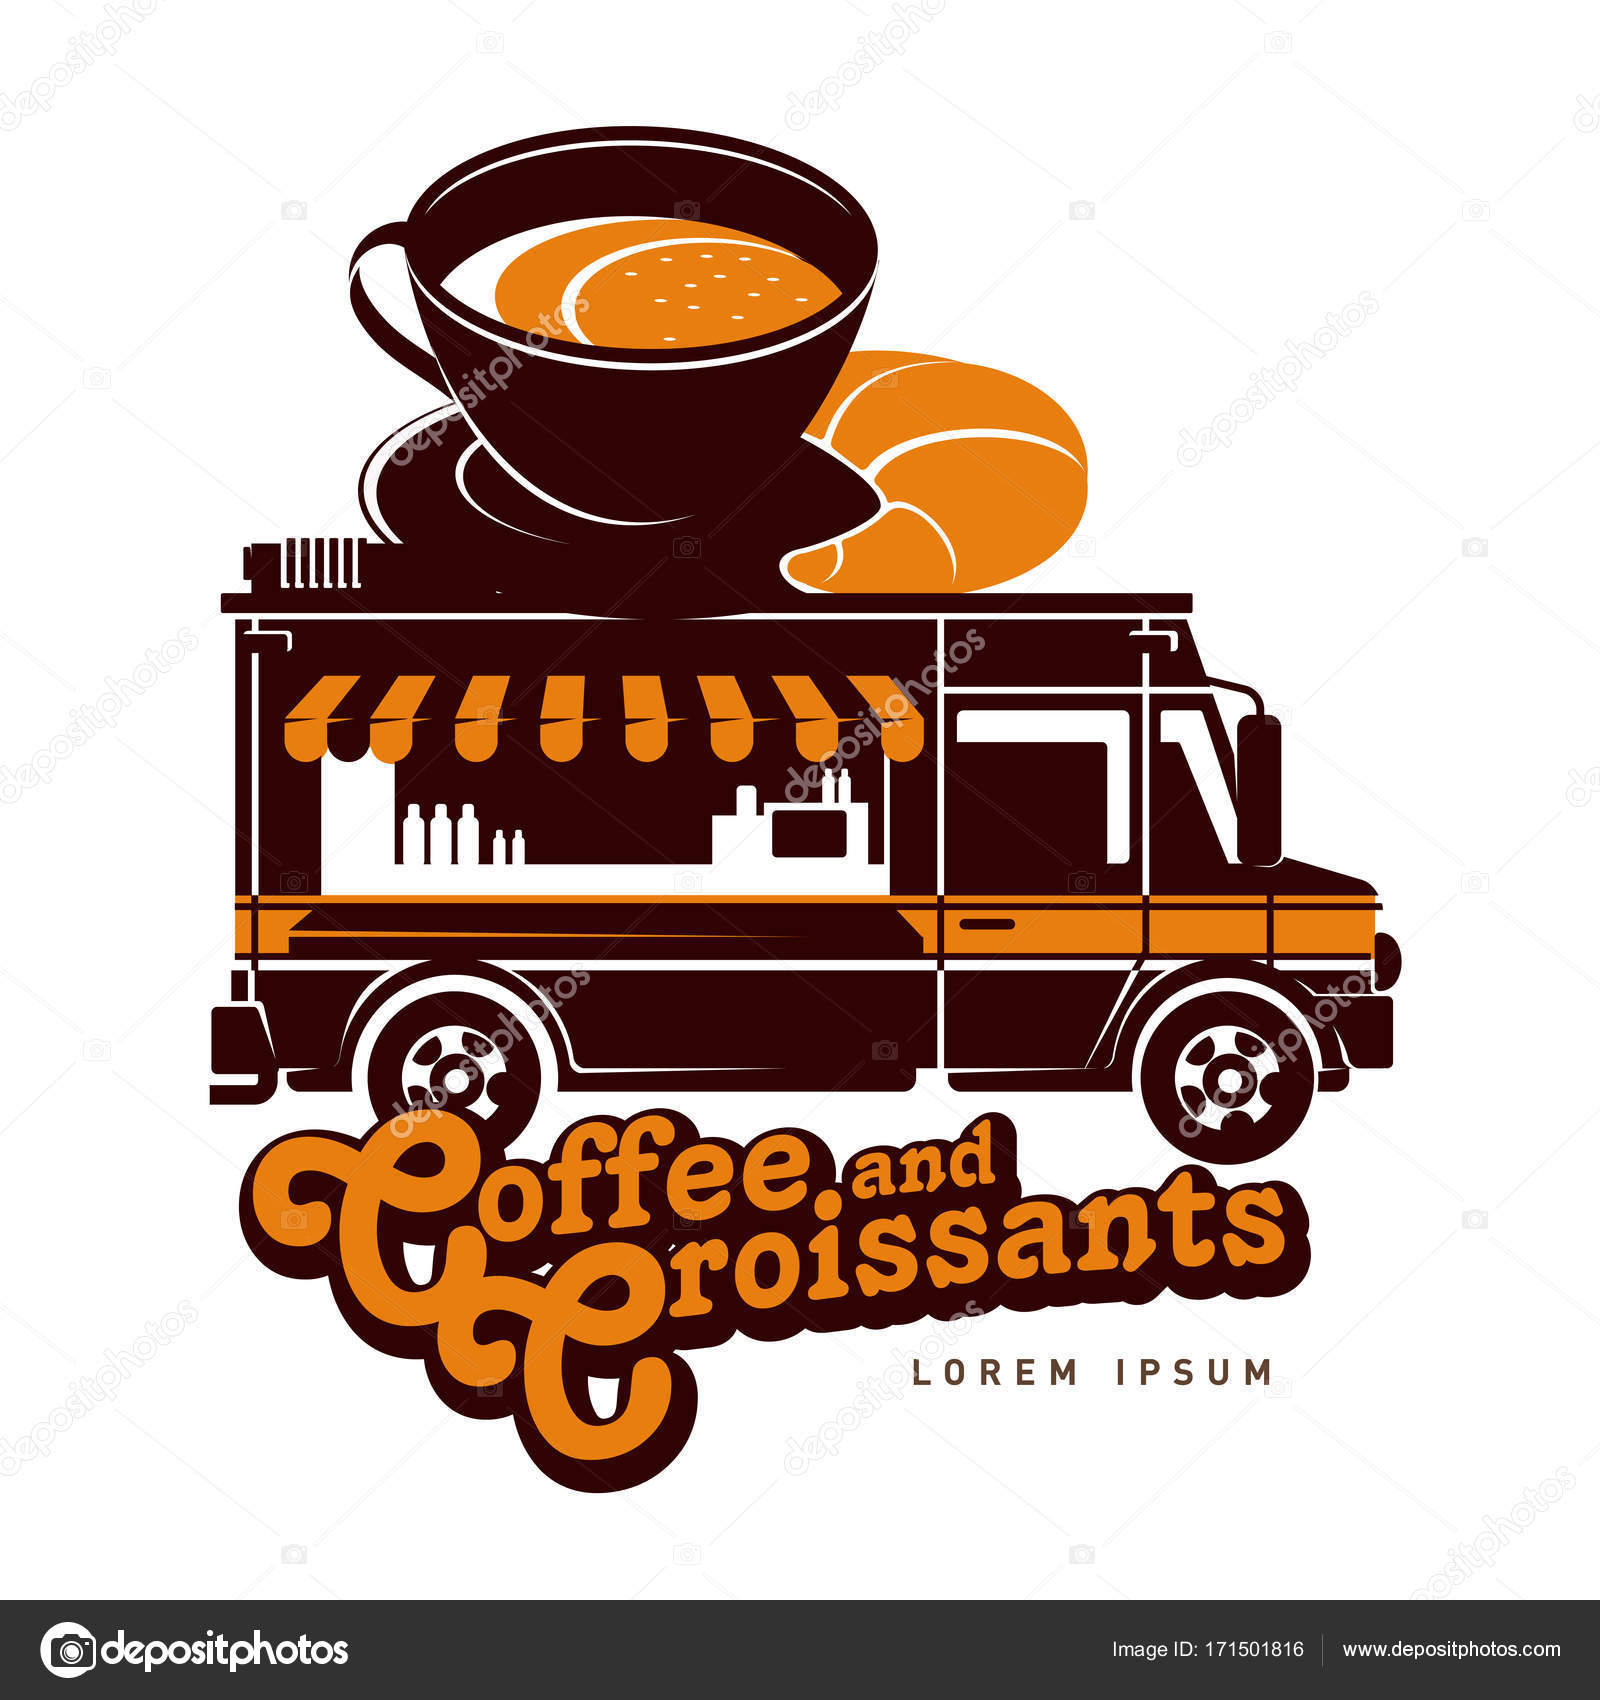 Food Truck Coffee And Croissants Logo Vector Illustration Vintage Style Badges Labels Design Concept For Confectionery Delivery Service